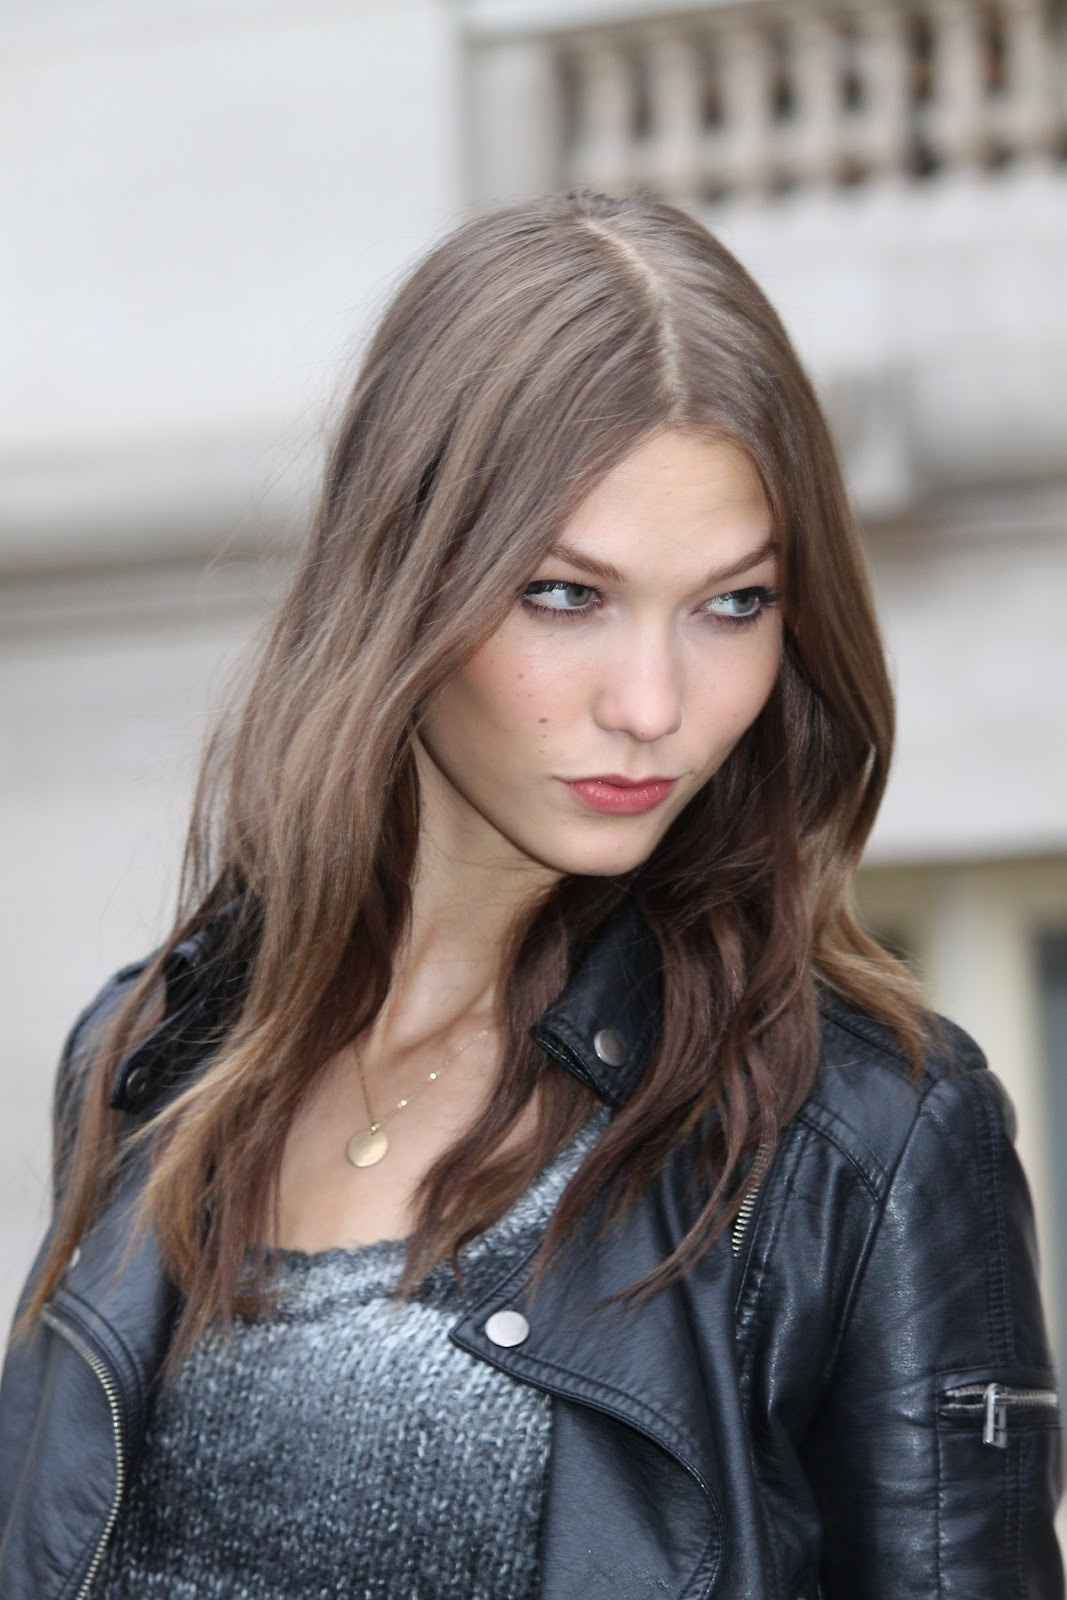 vogue-mafia:  vs-angelwings:  Karlie Kloss  q'd  Karlie